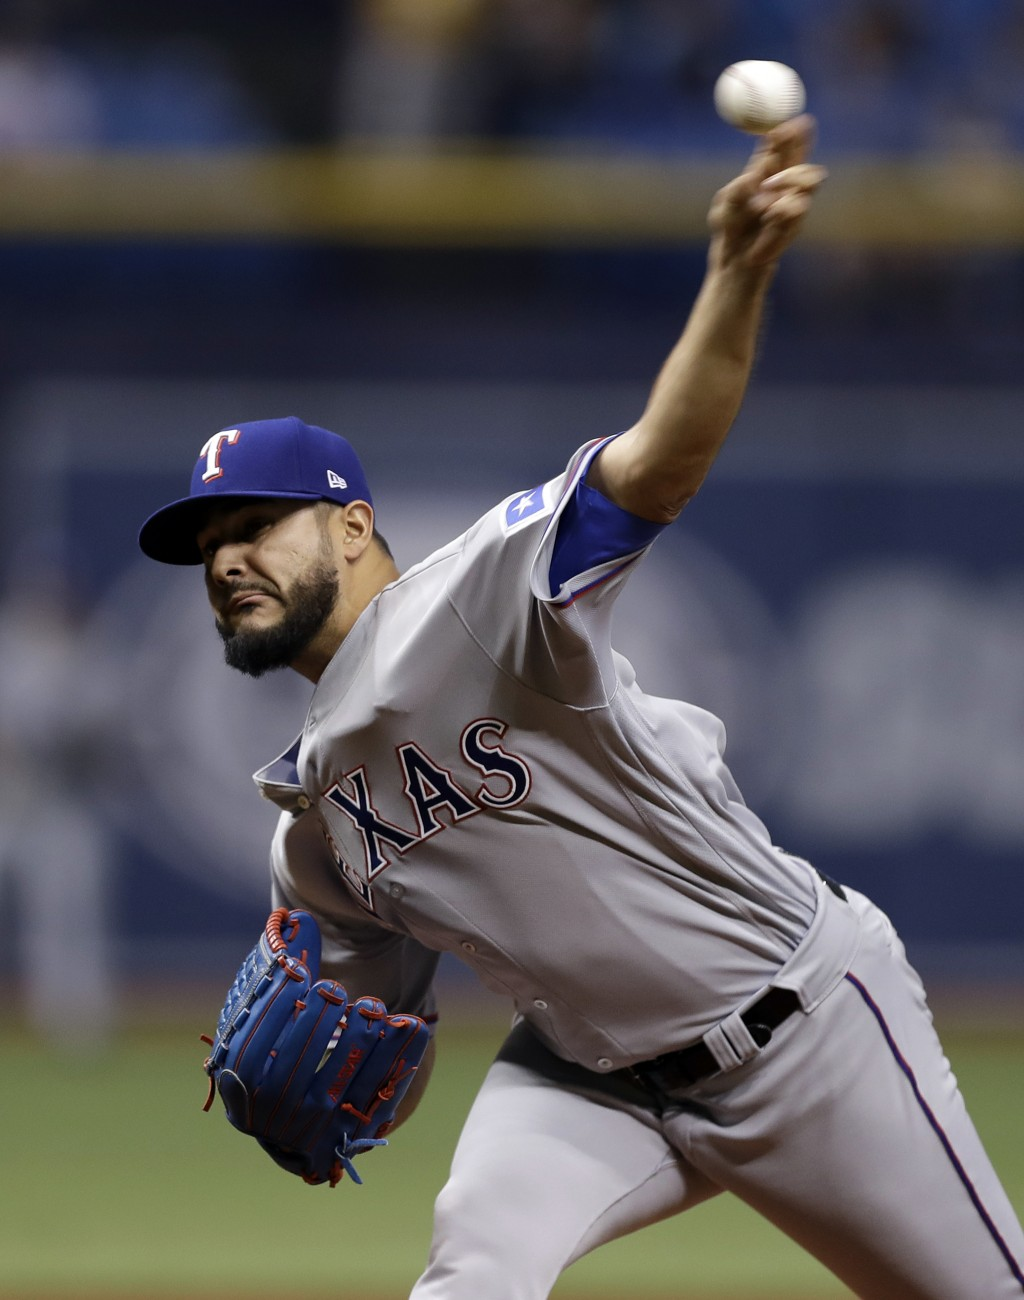 Texas Rangers' Martin Perez pitches to the Tampa Bay Rays during the first inning of a baseball game Monday, April 16, 2018, in St. Petersburg, Fla. (